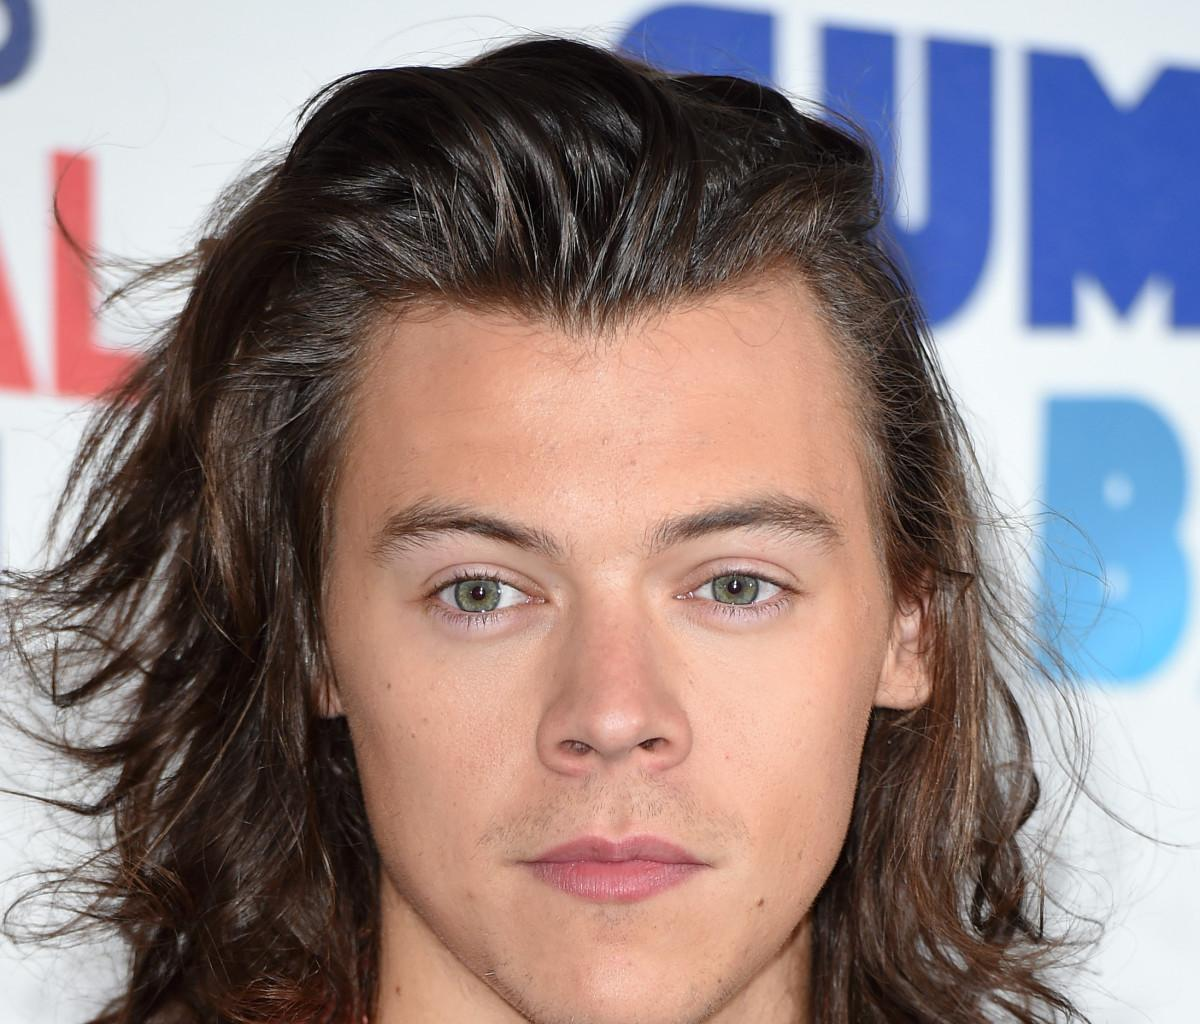 Harry Styles Chops Off His Long Hair And People Are Freaking Out - Check Out The Mixed Reactions!